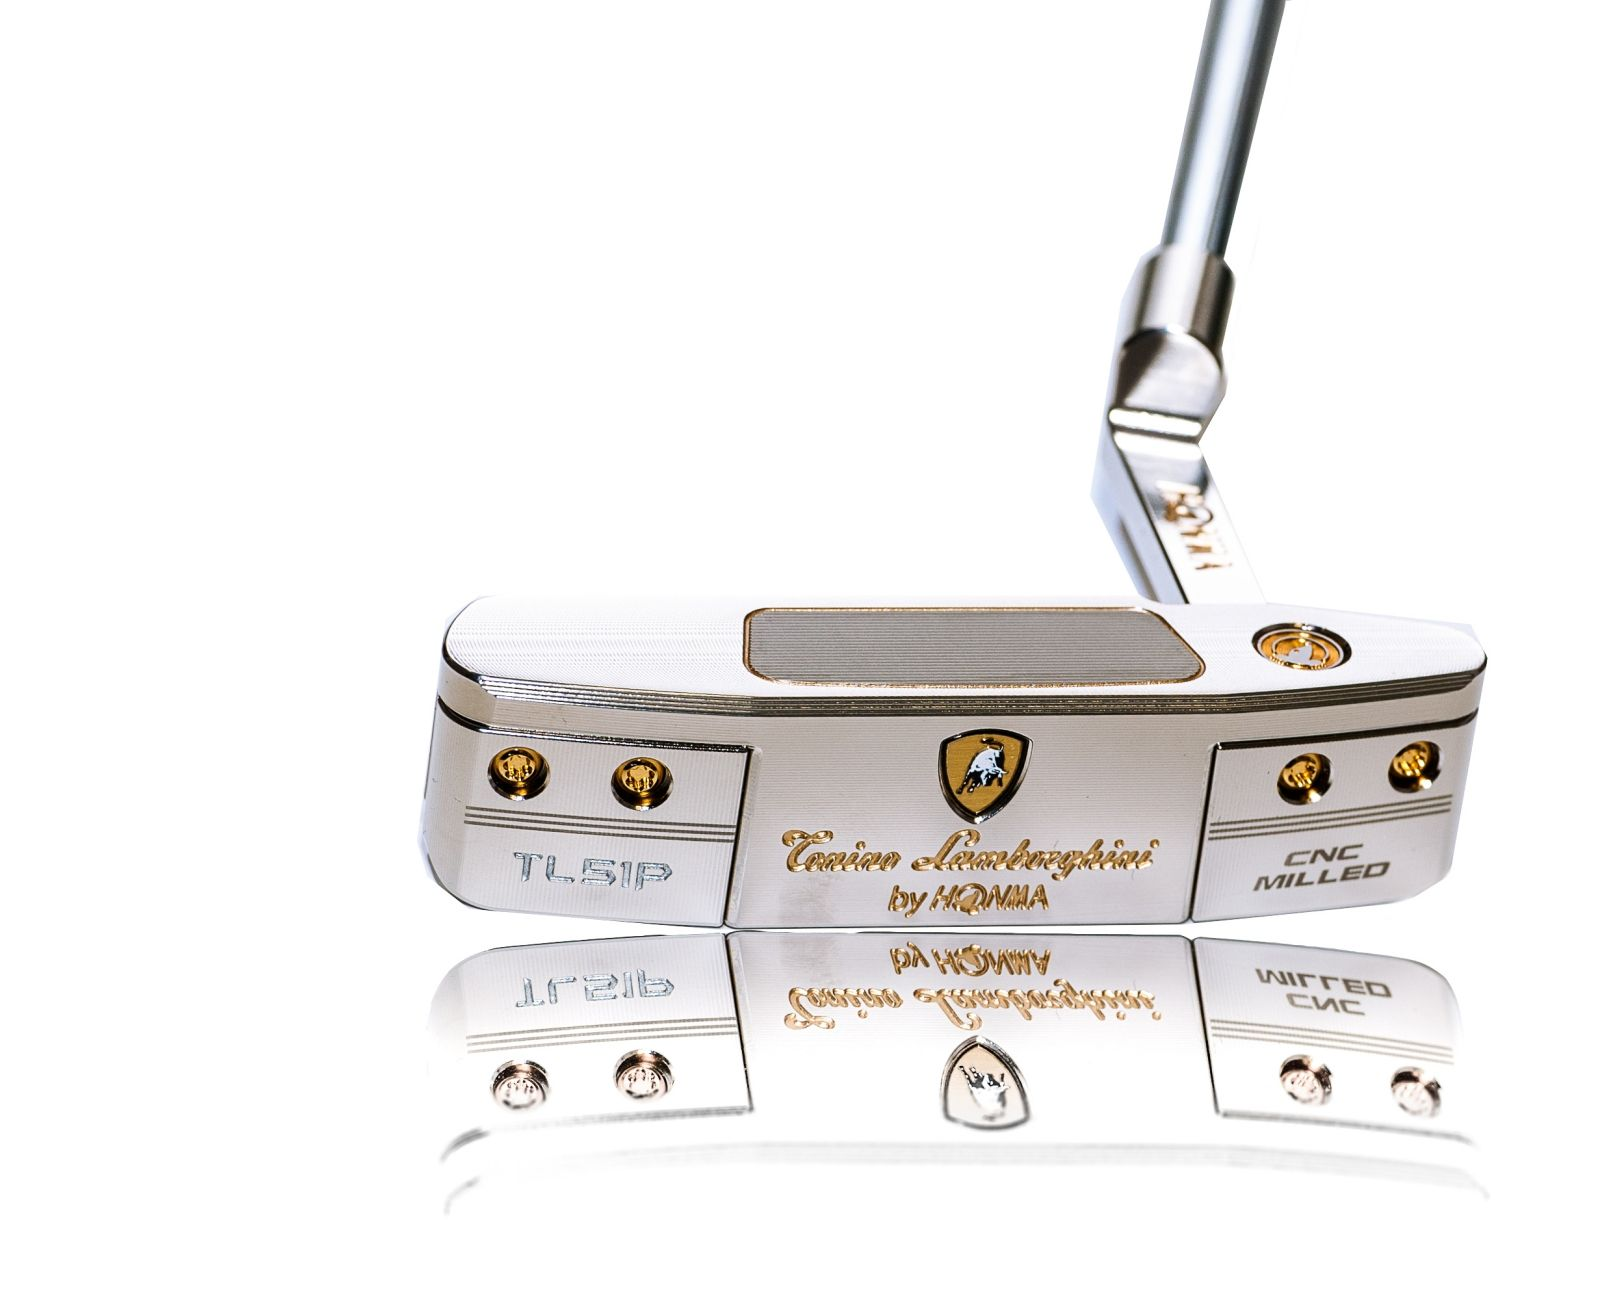 The Ultimate Tonino Golf line, manufactured in